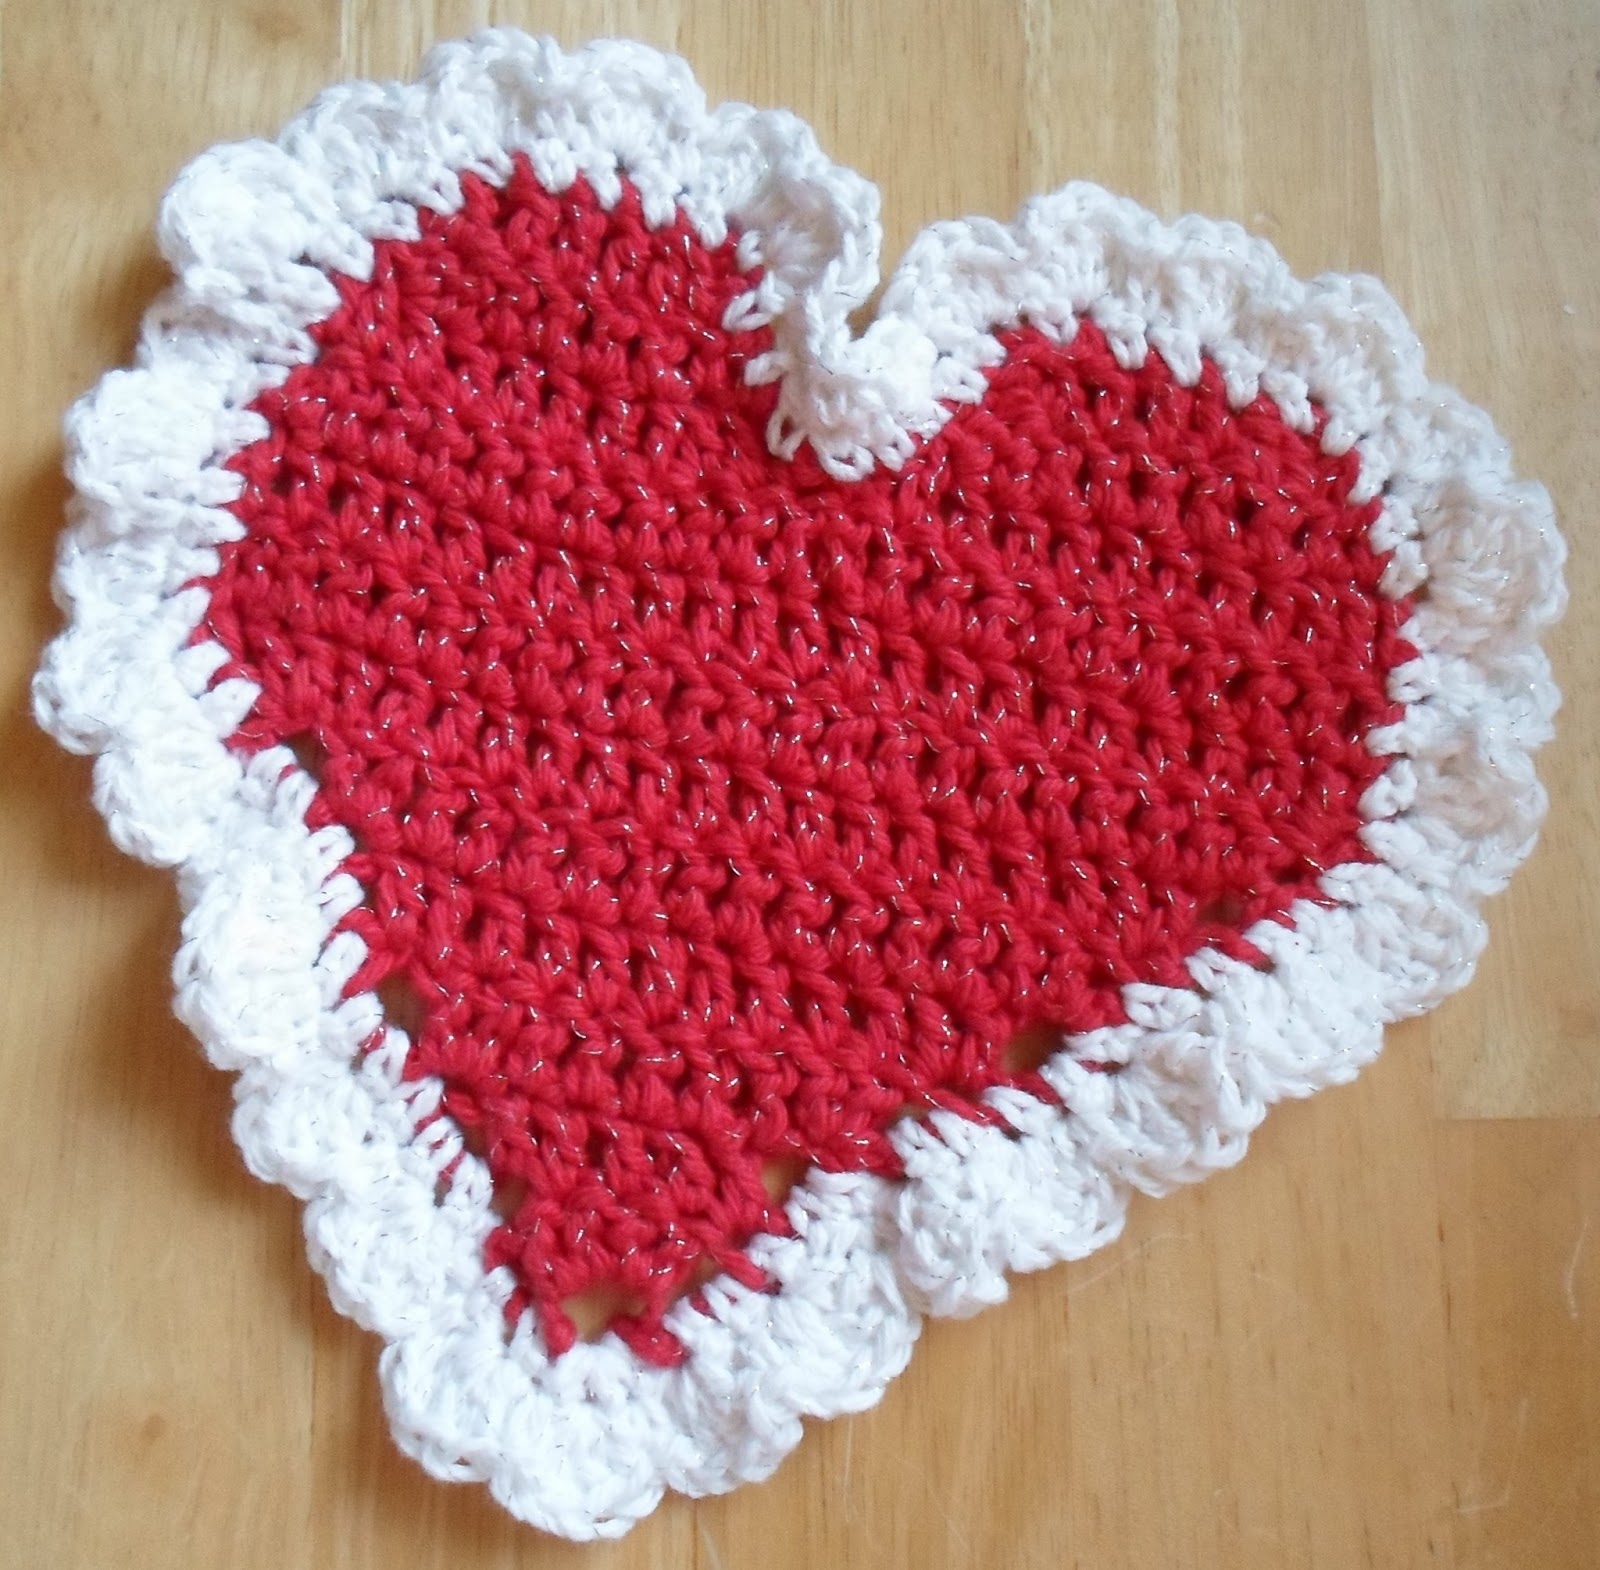 Crochet A Heart : Crochet Heart Dish Cloth-Project #2